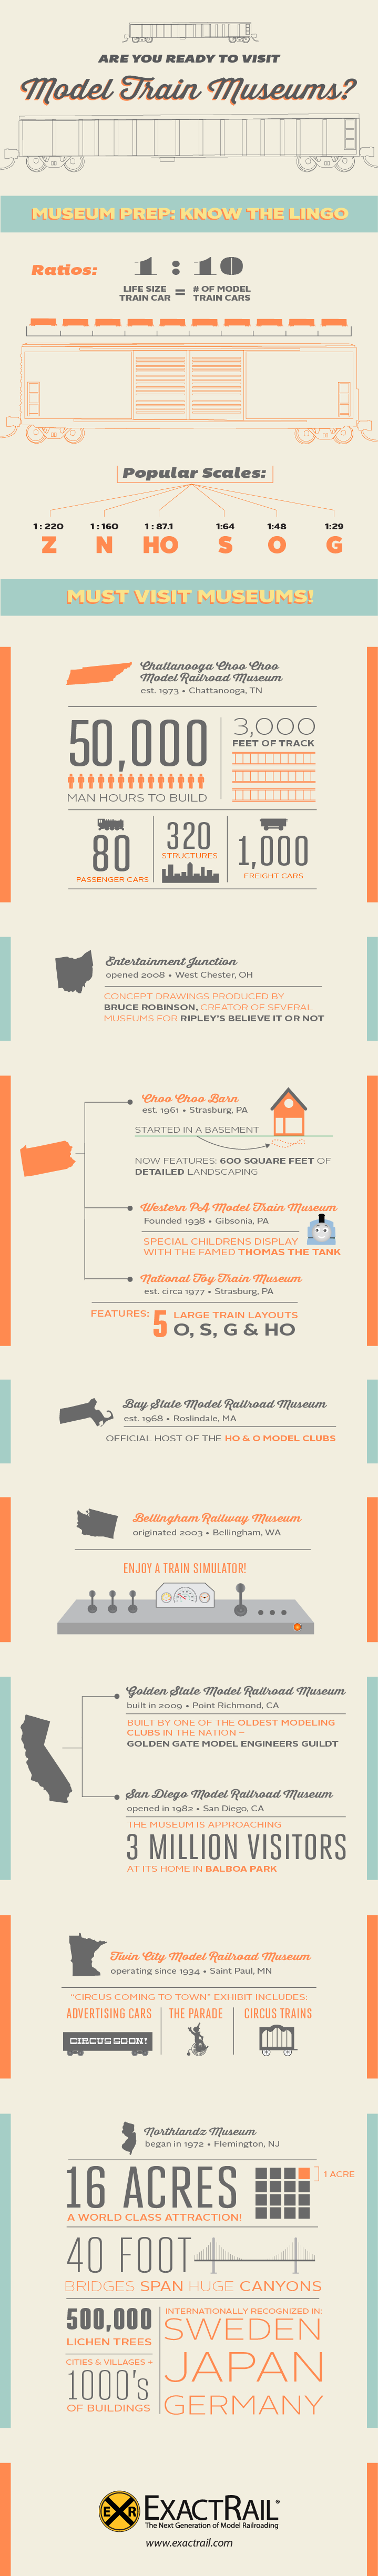 Model-Train-Museums-infographic